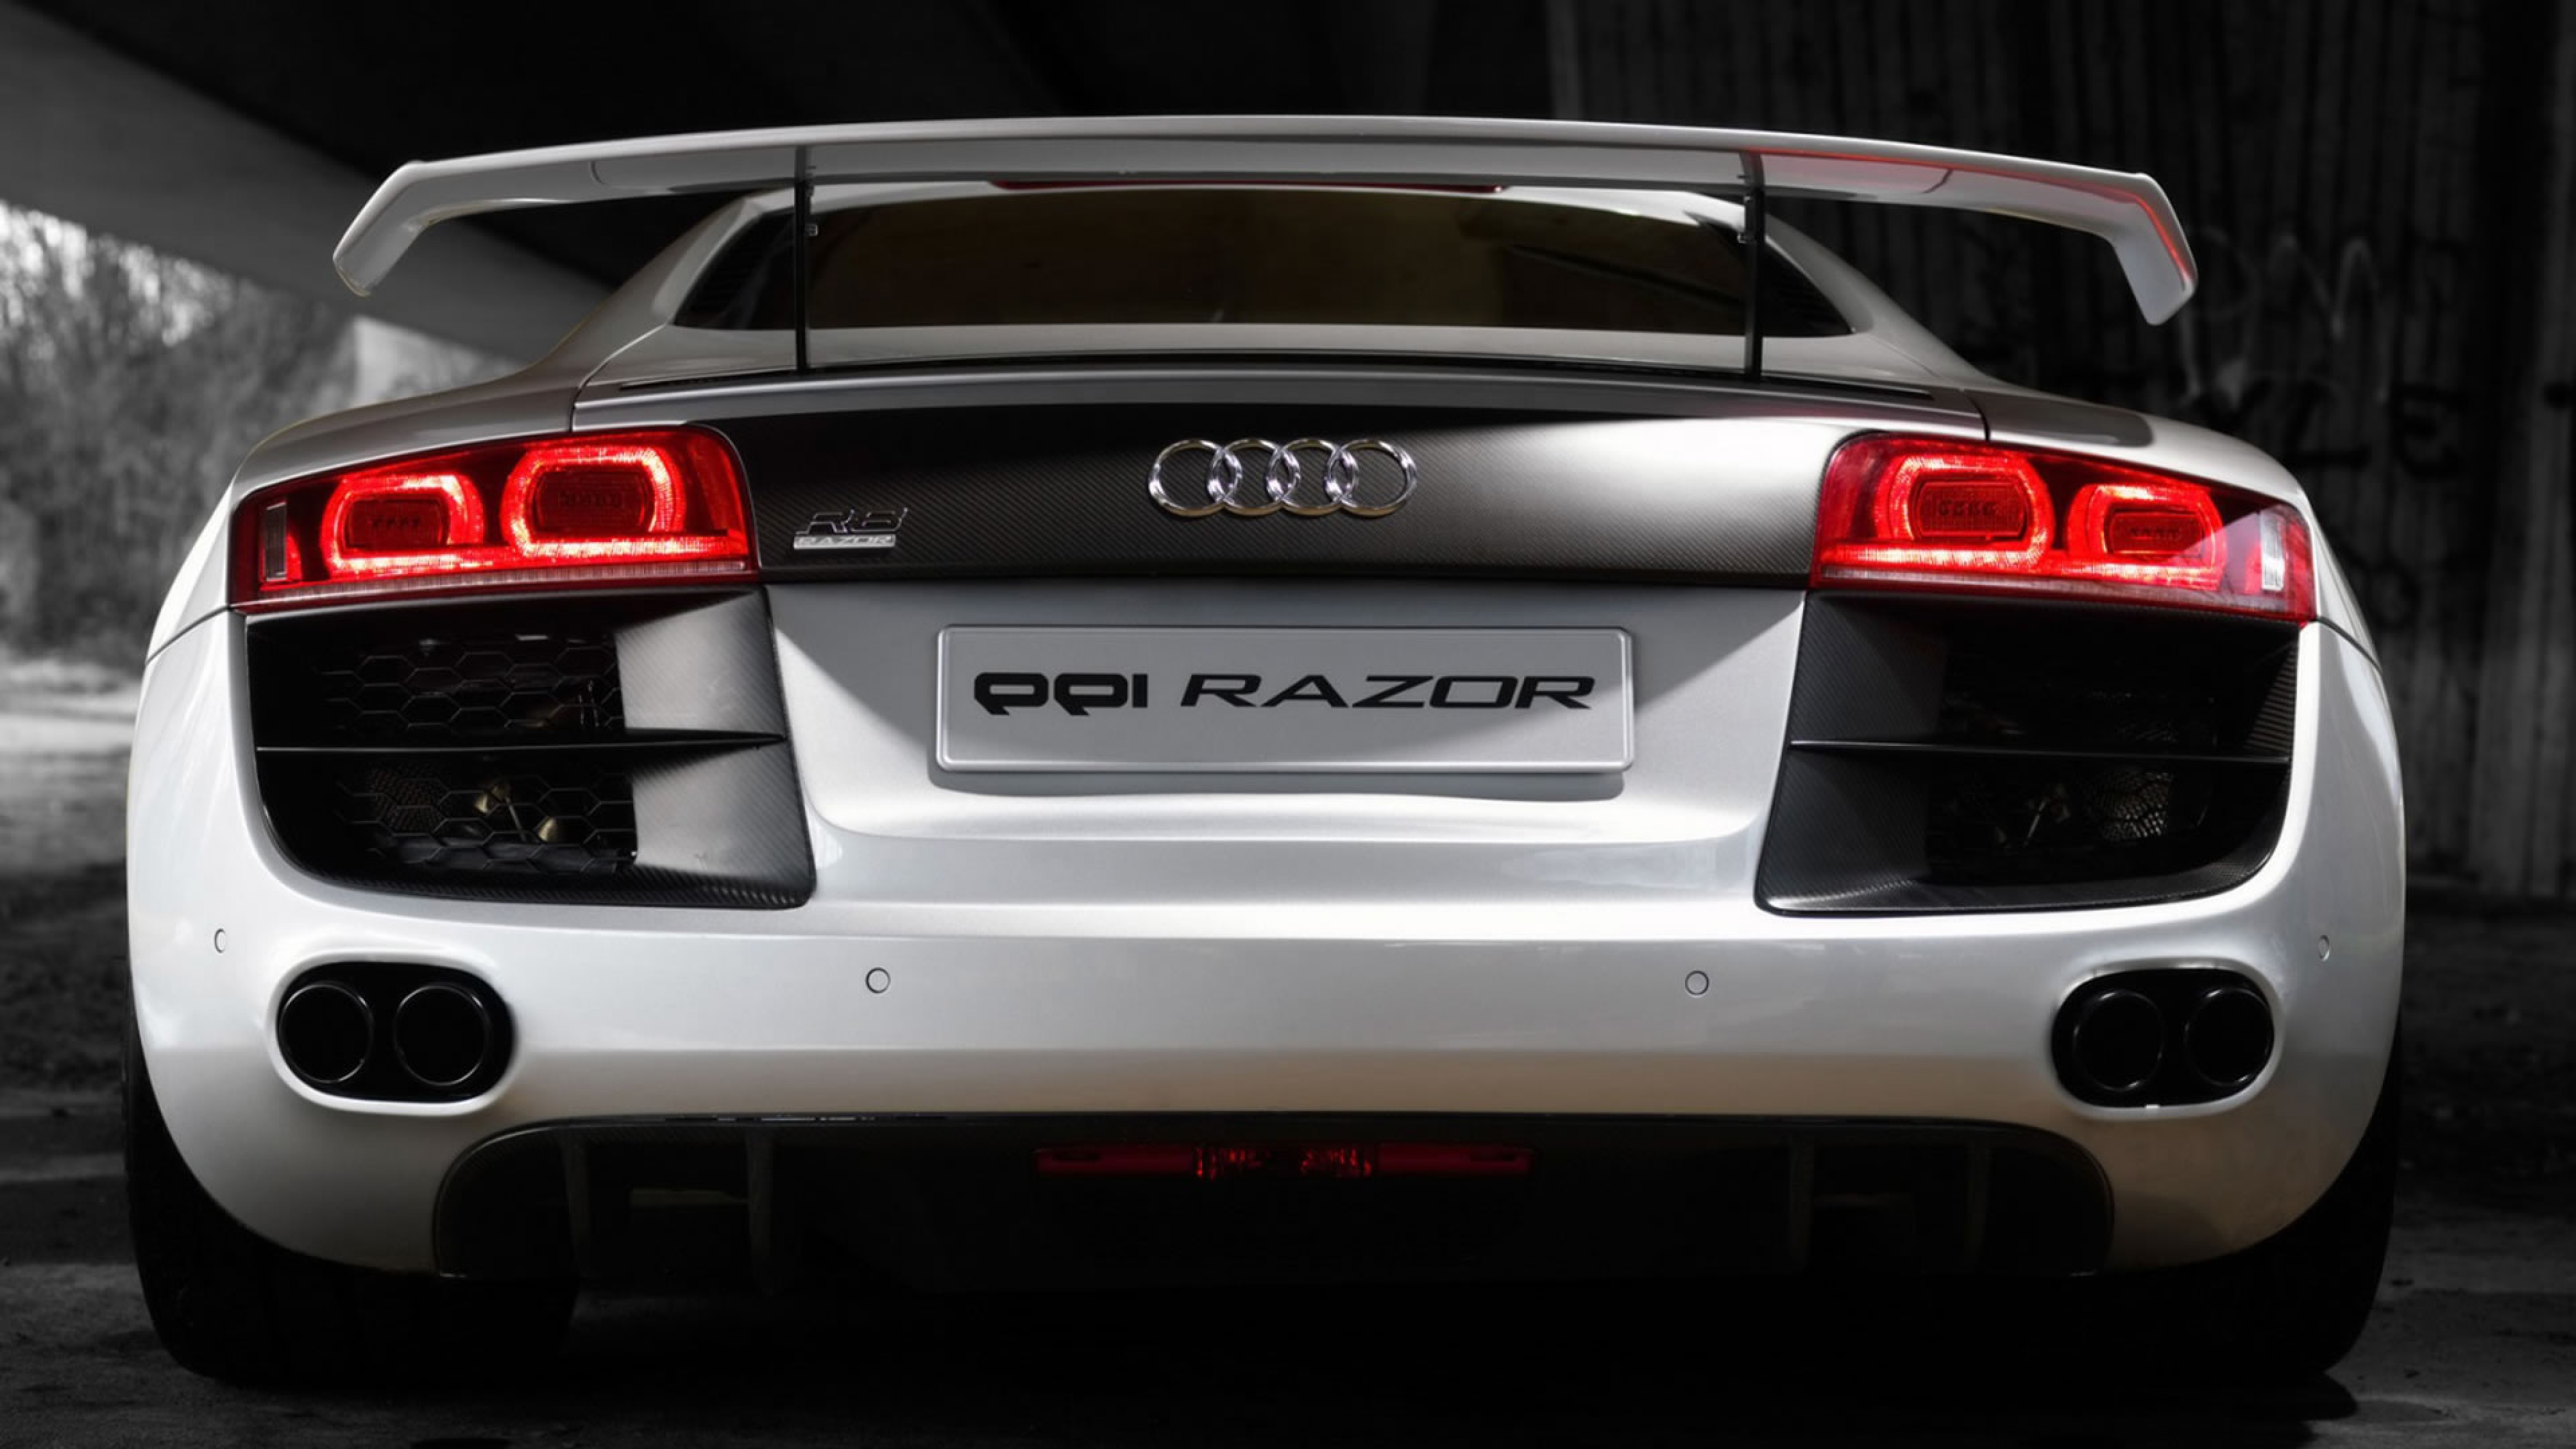 Audi R8 Luxury Car White Symbols Ride Wallpaper Background 4K 3840x2160